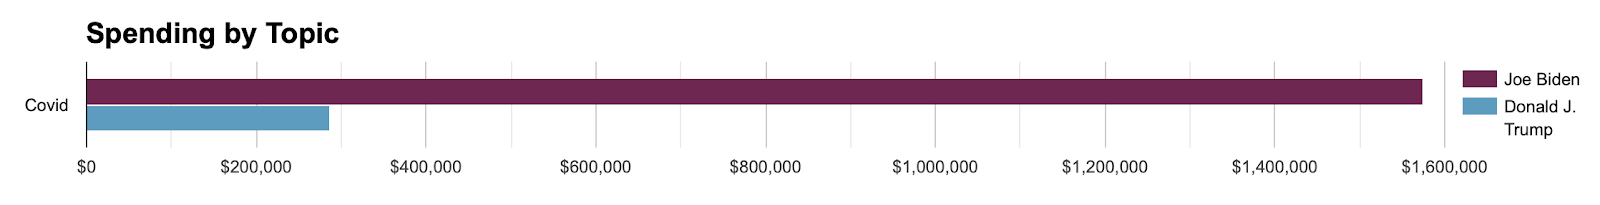 Bar chart showing total spending on COVID ads for Biden and Trump from 6/1 to 10/4. The chart shows Biden spending significantly more than Trump.